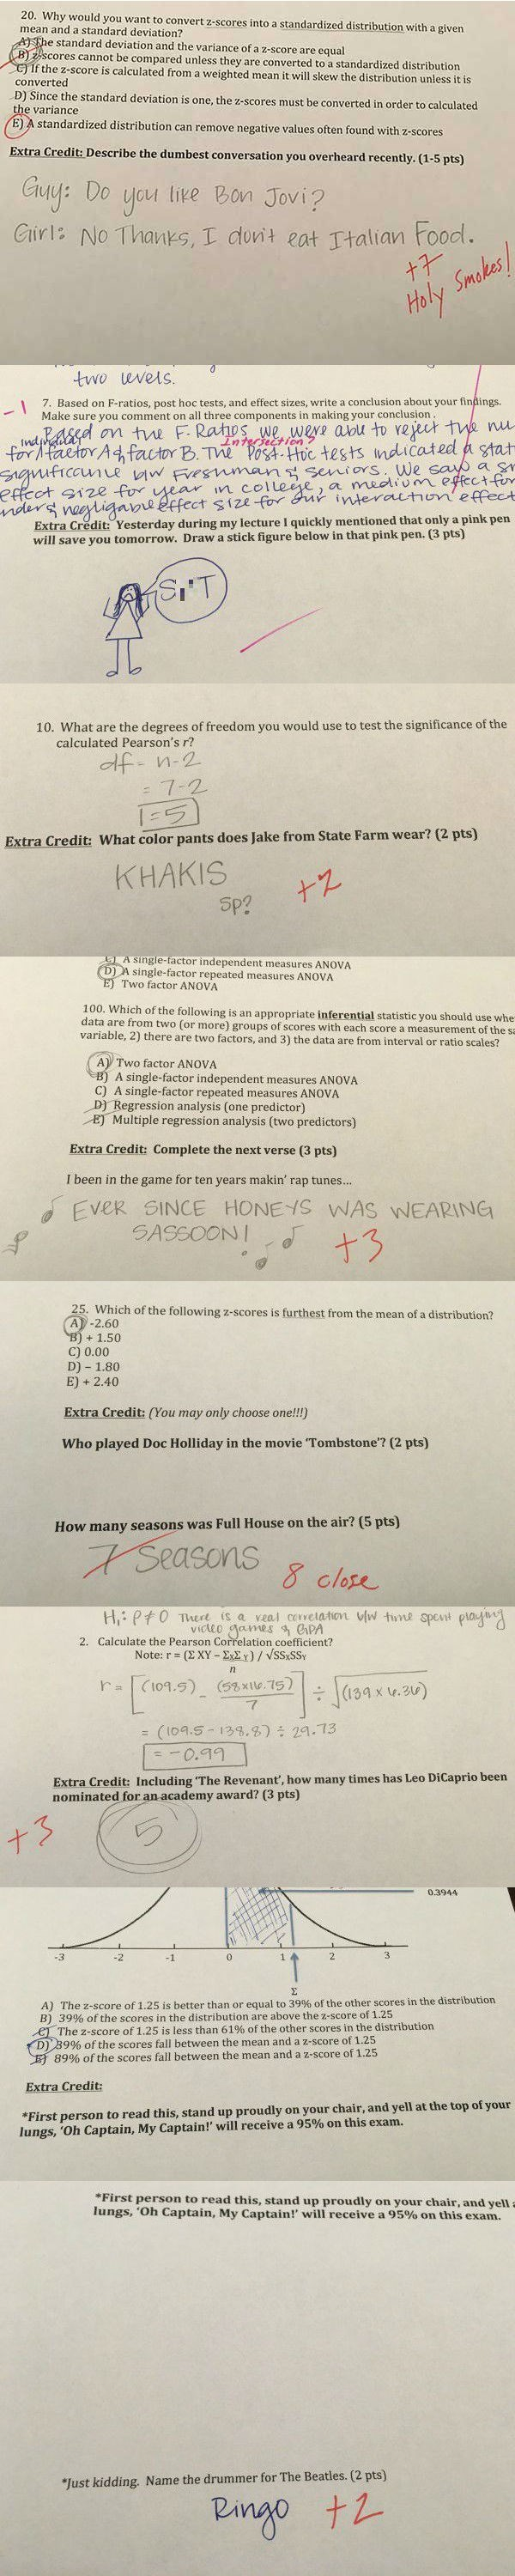 win image professor asks best extra credit questions